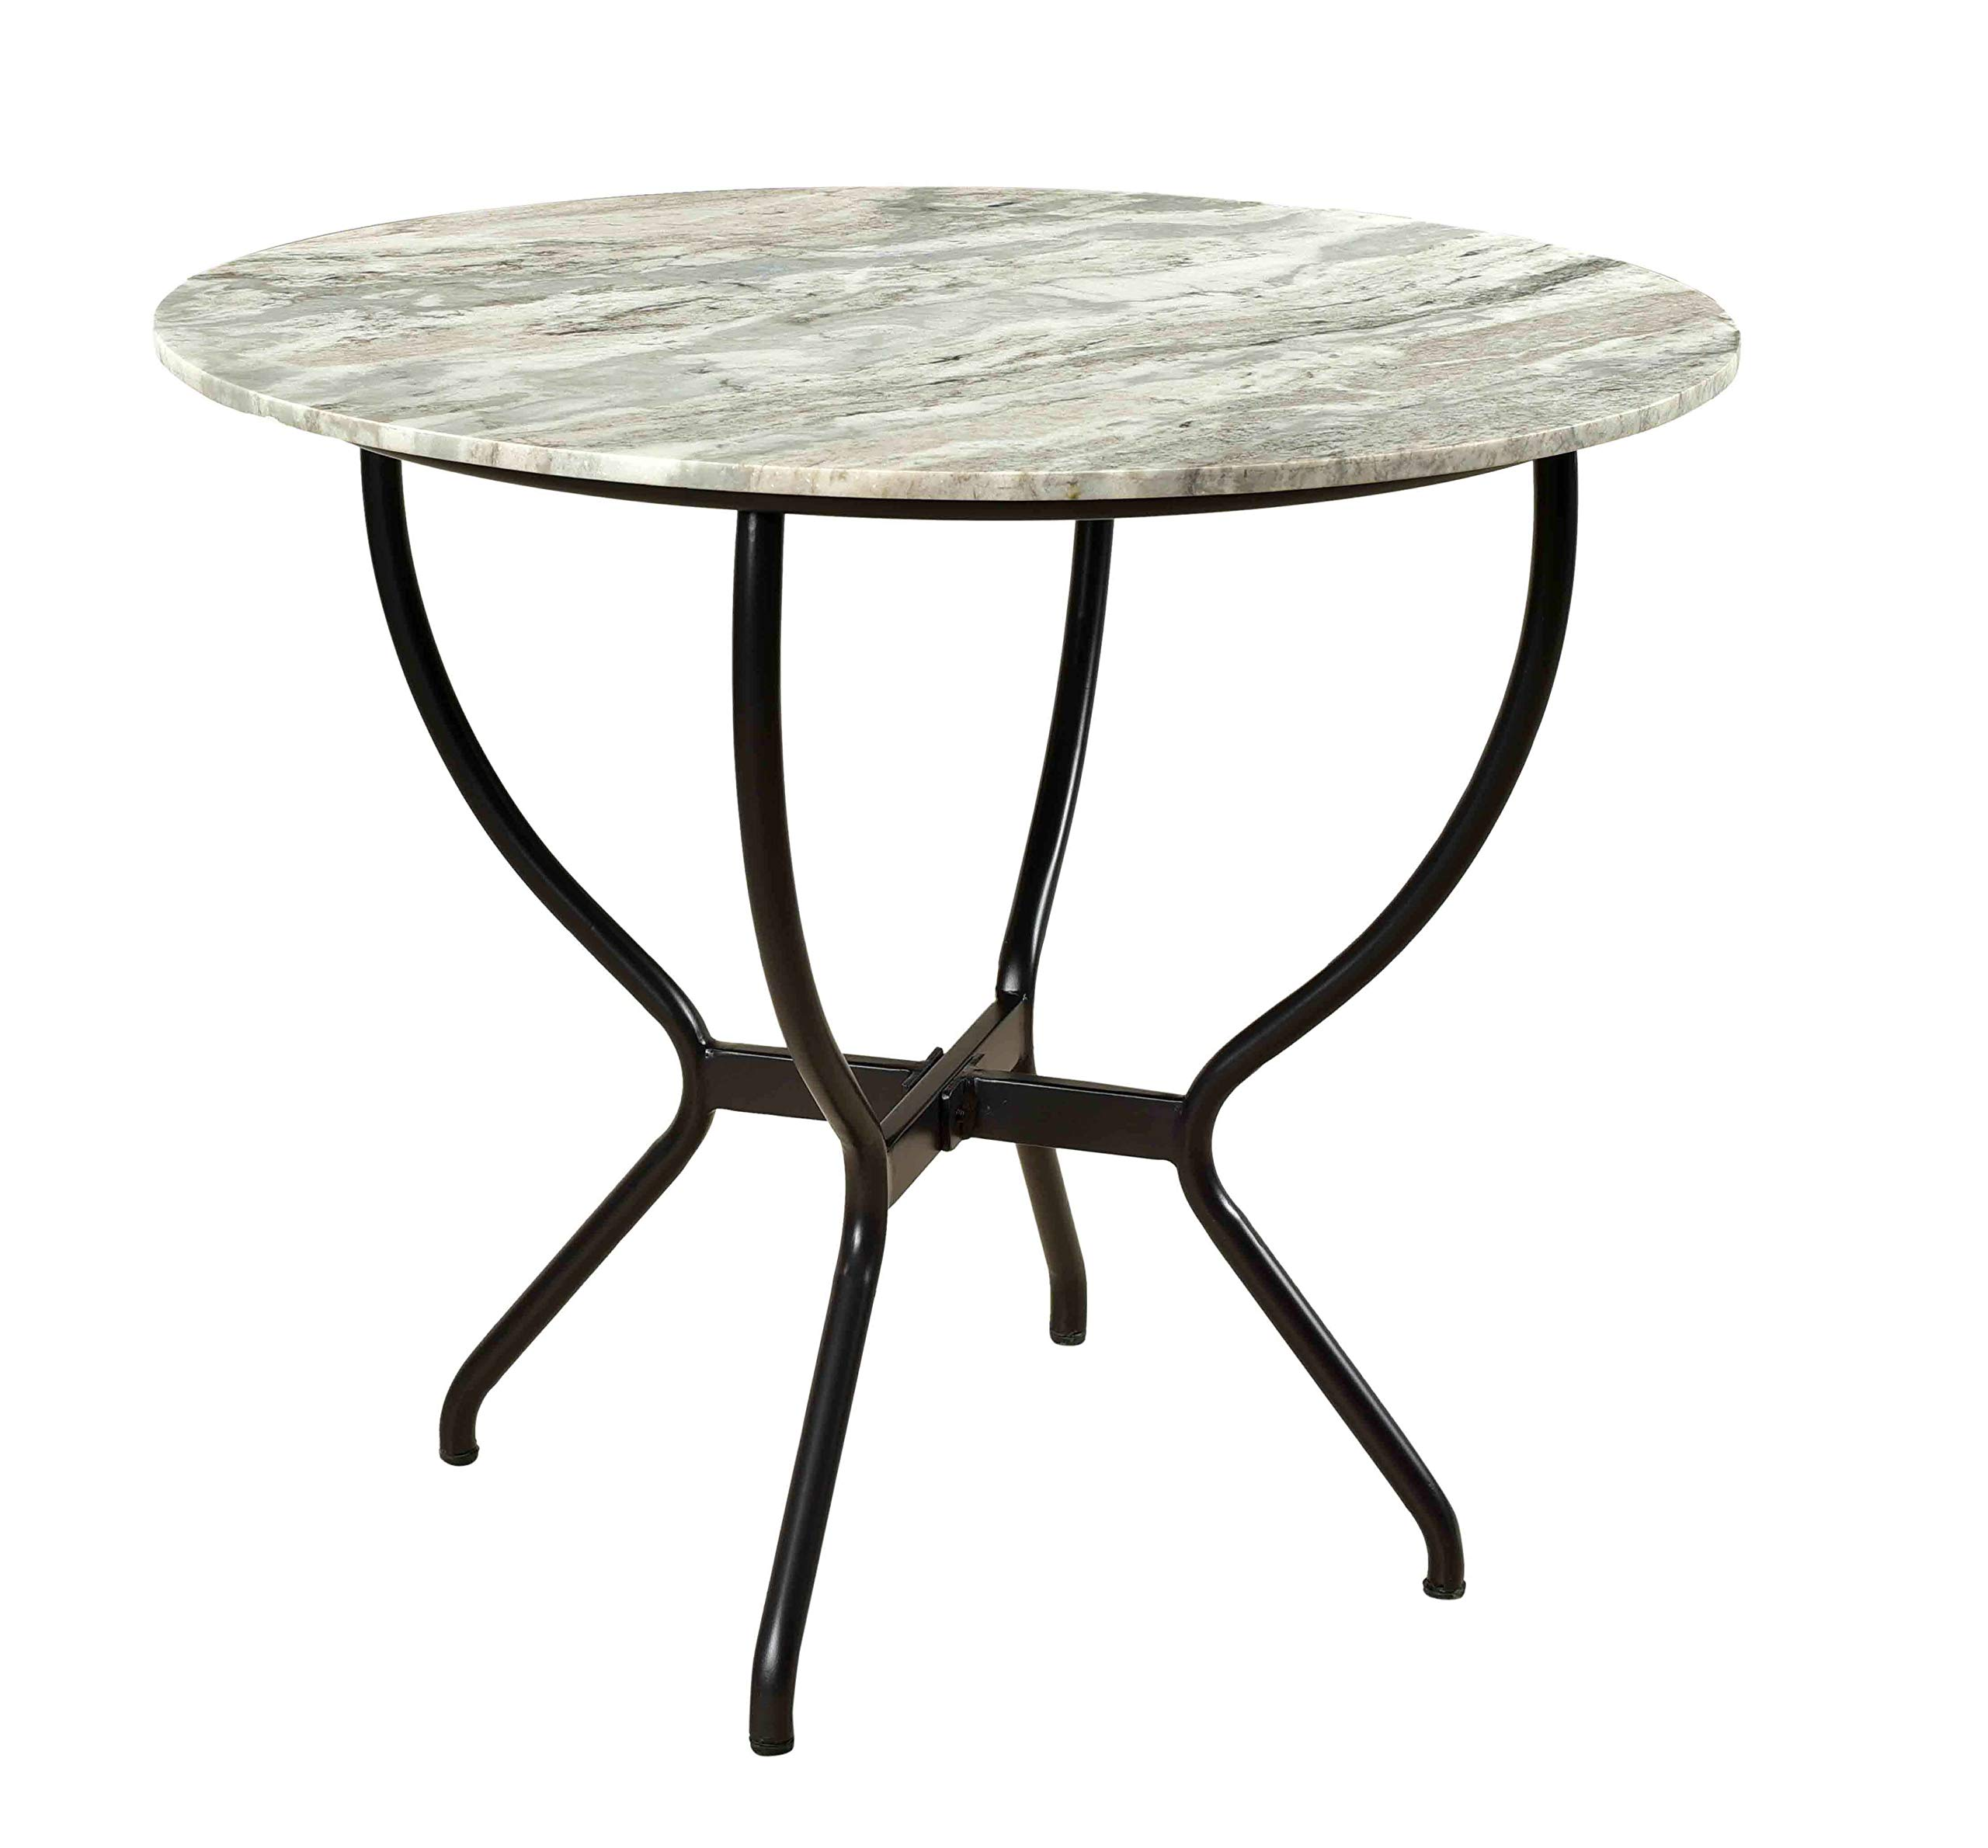 Treasure Trove 37130 Madeline Round Dining Table Black by Treasure Trove